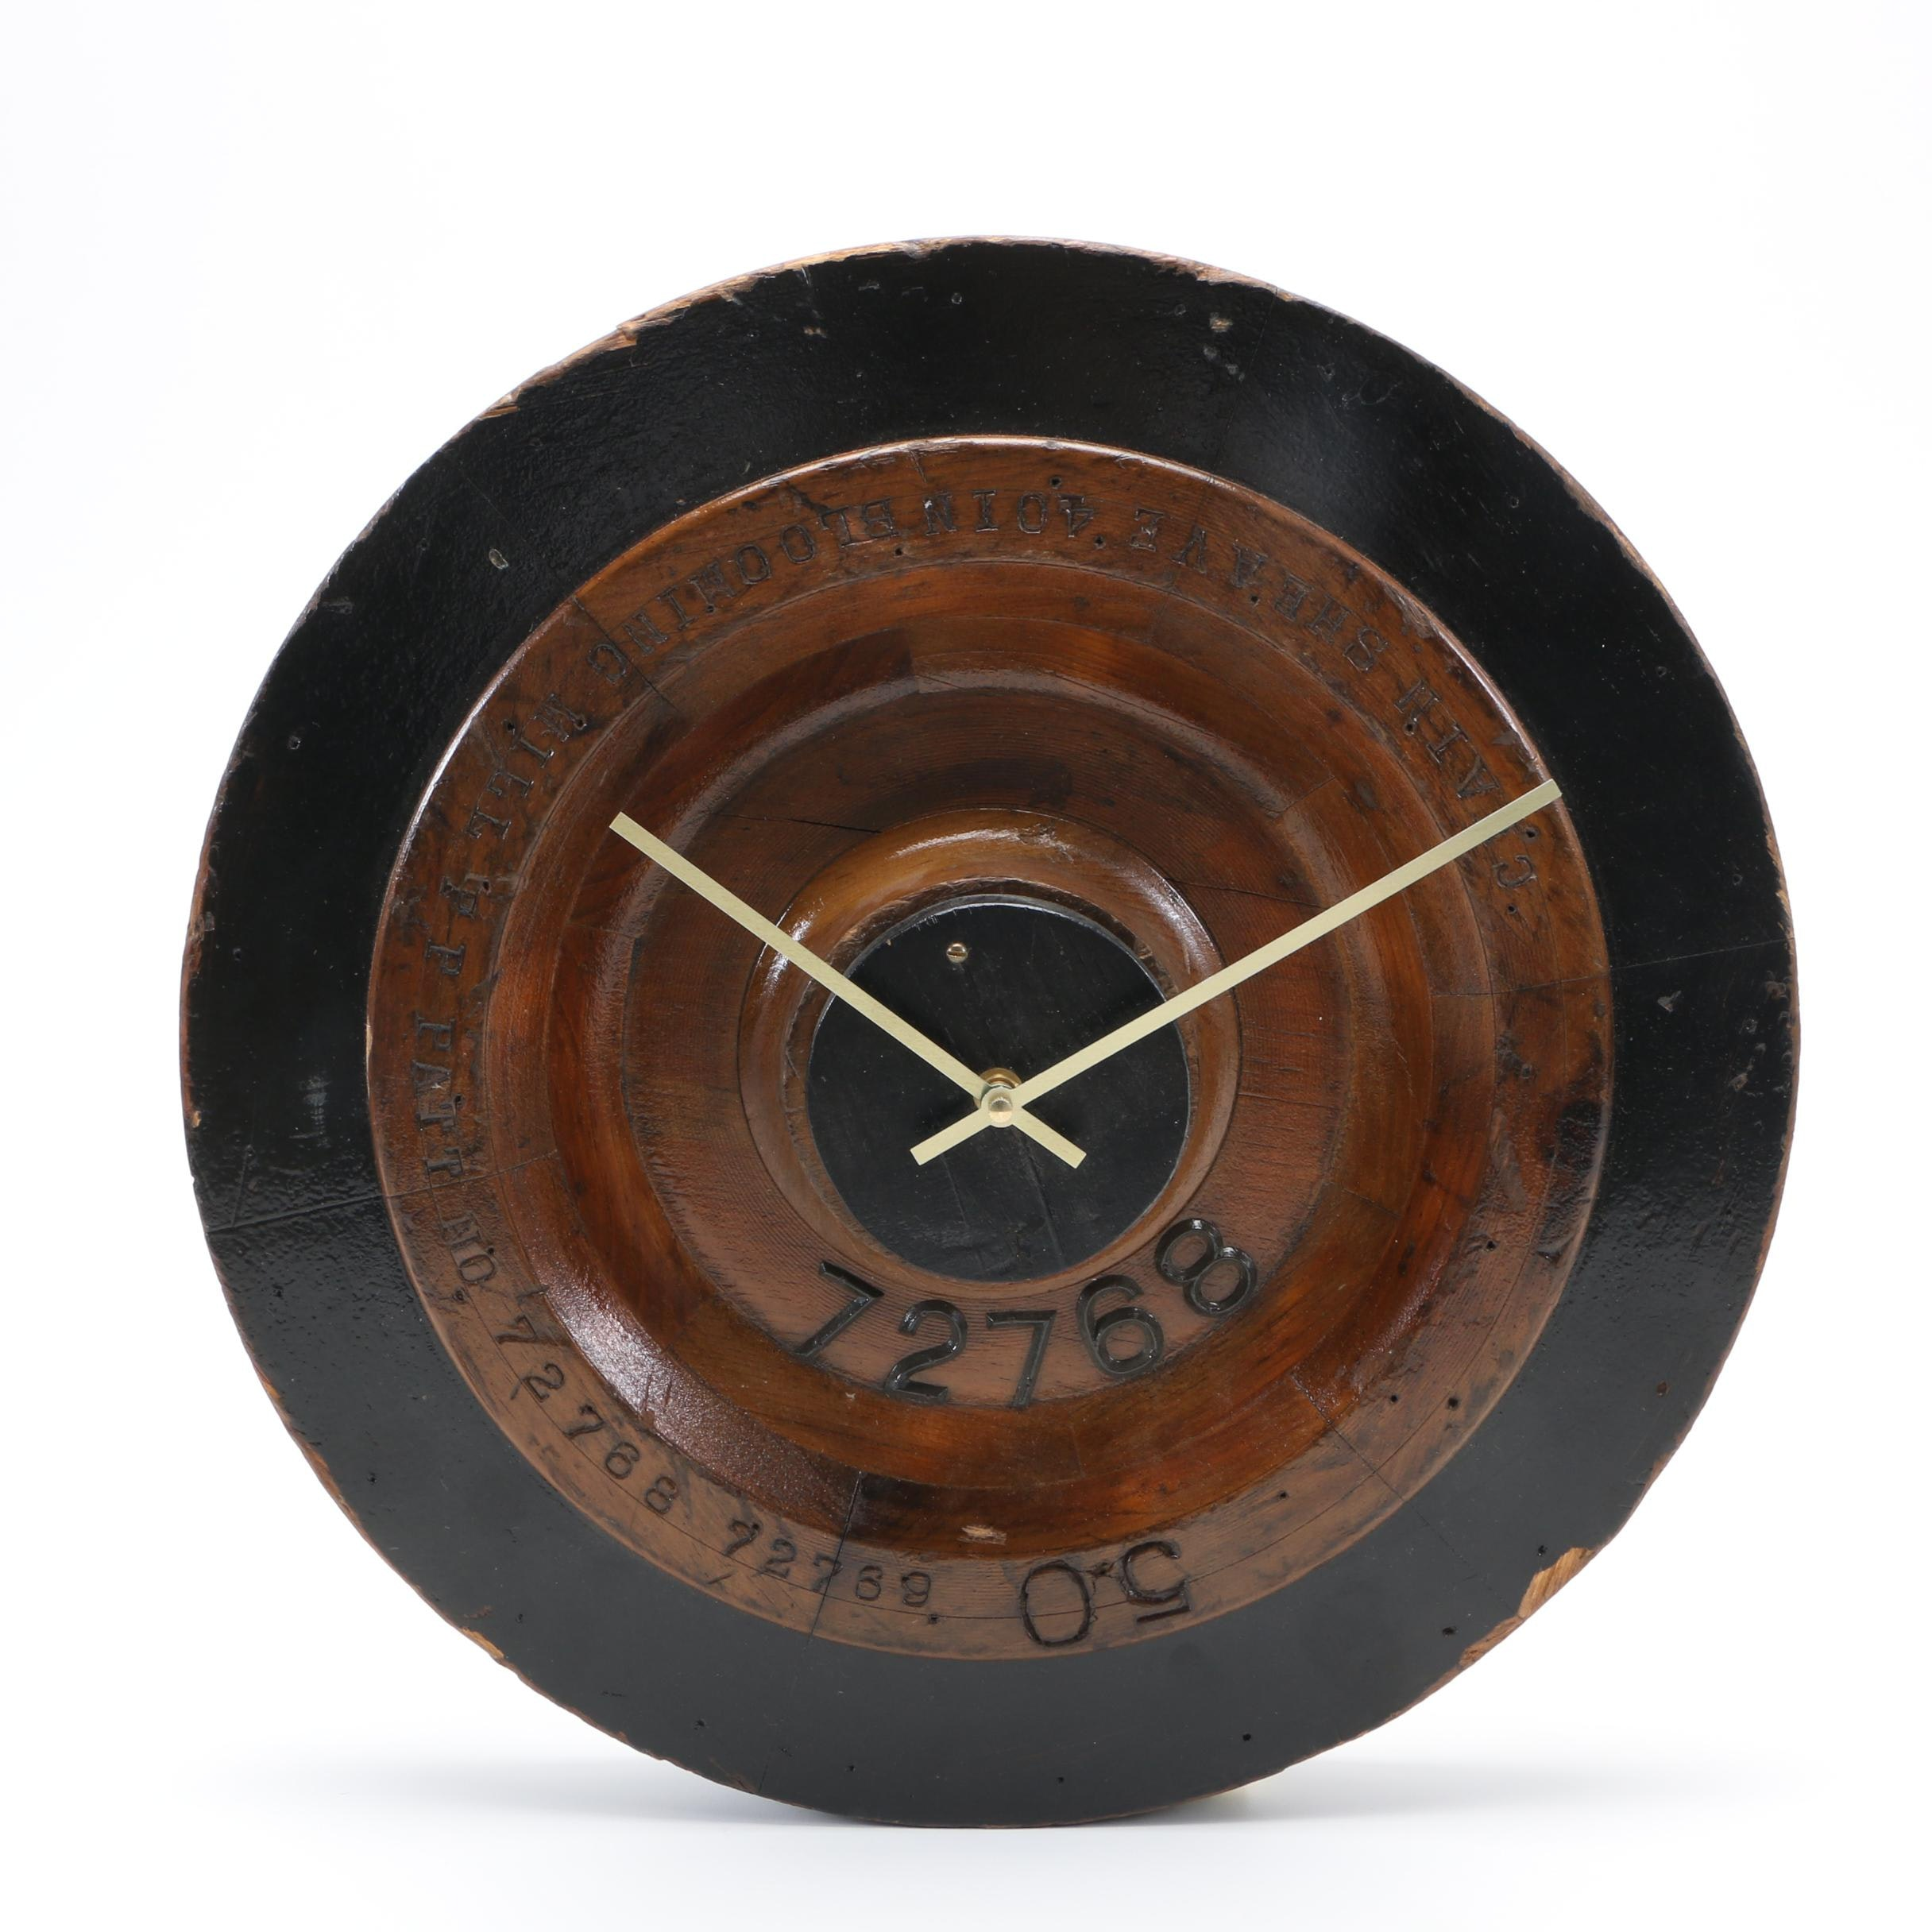 Re-purposed Vintage Foundry Mold Wall Clock by Joseph Hensel